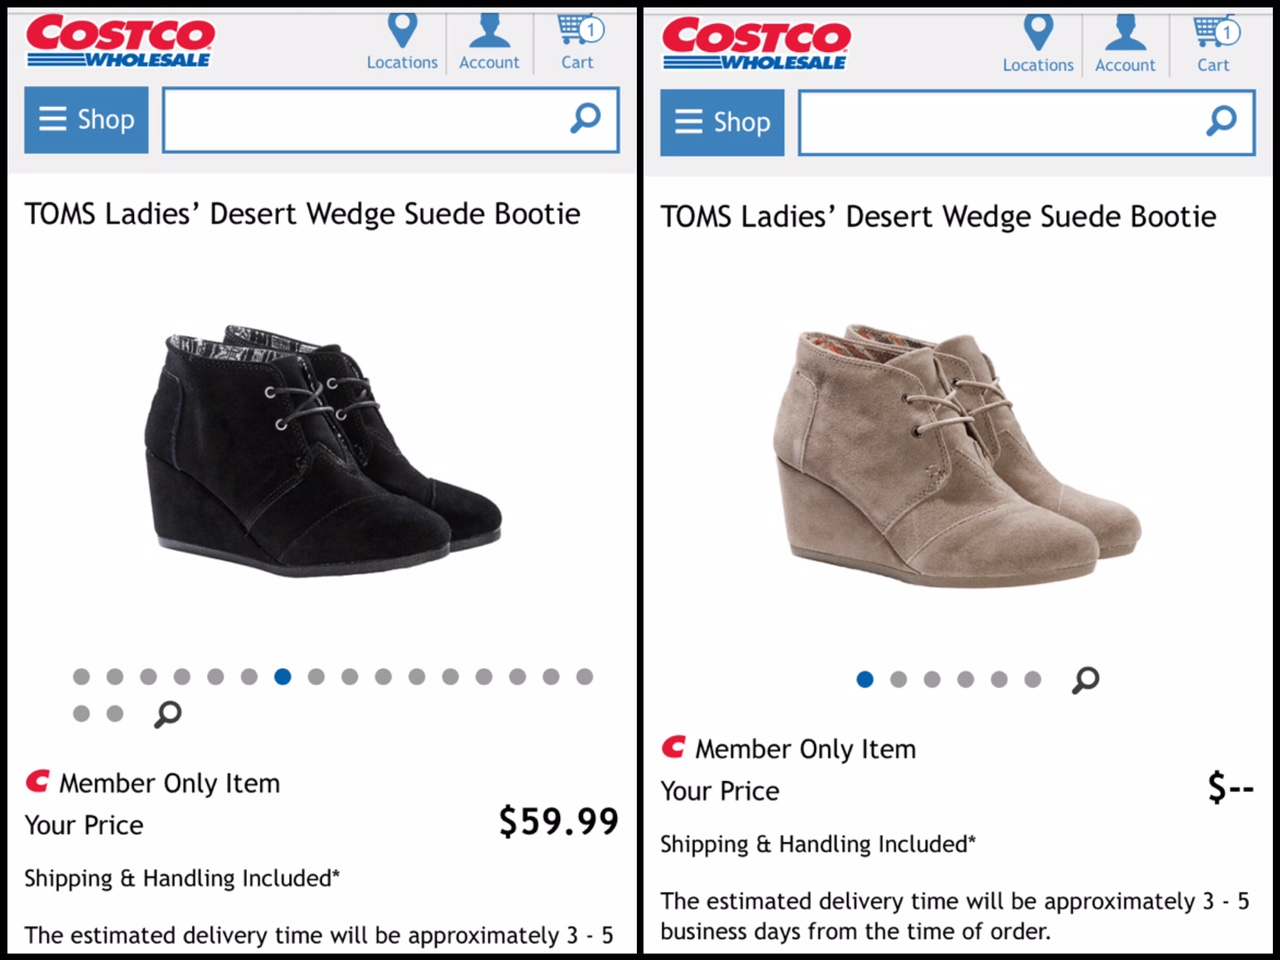 e428c86b339 TOMS Desert Wedge booties are just  59.99 for Costco members!